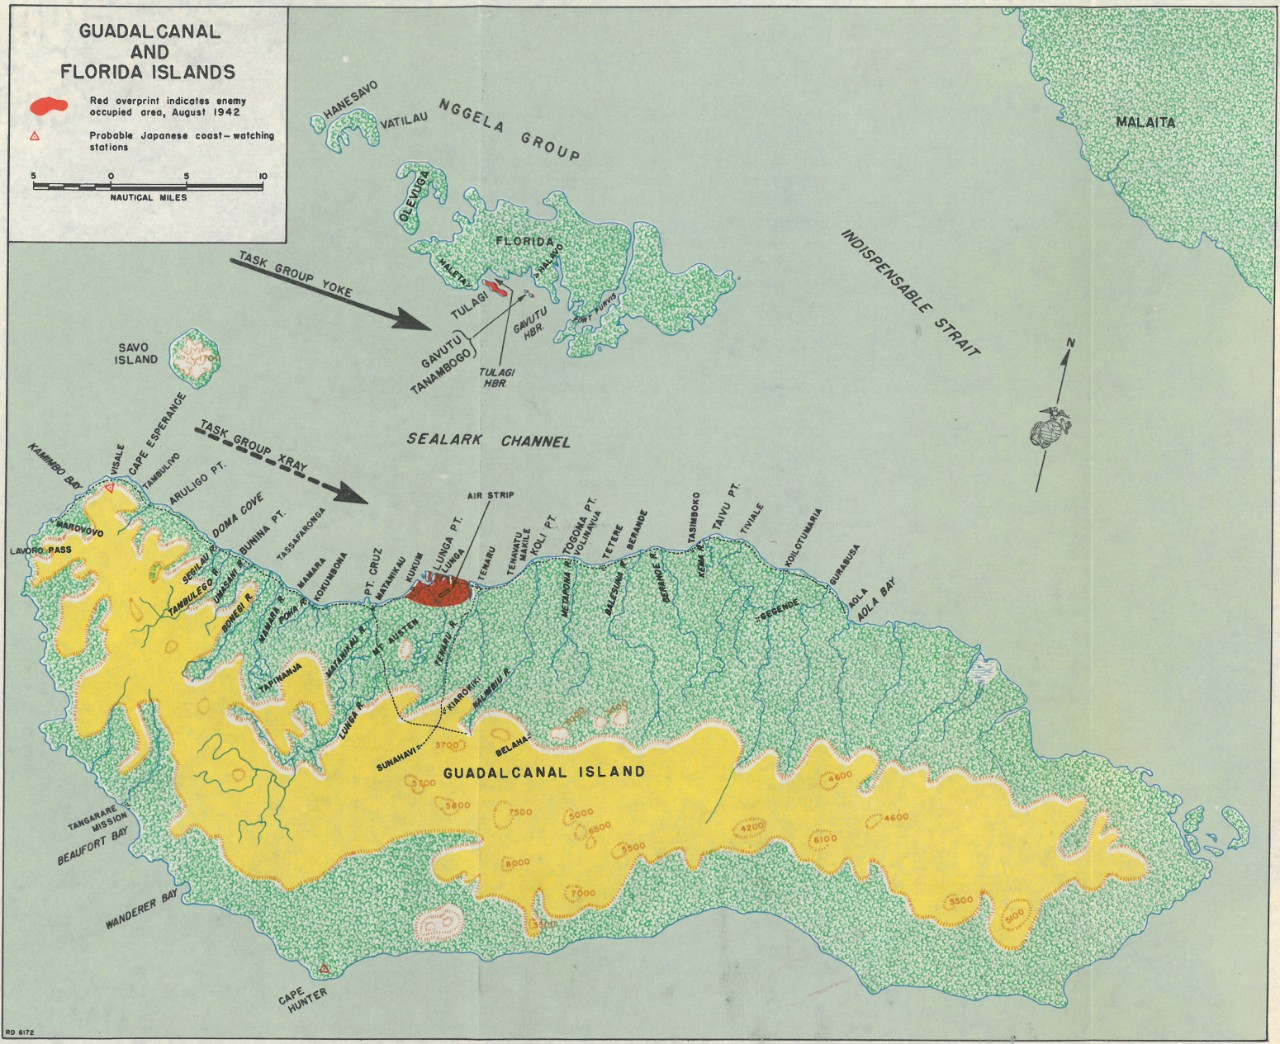 Map 1: Guadalcanal and Florida Islands